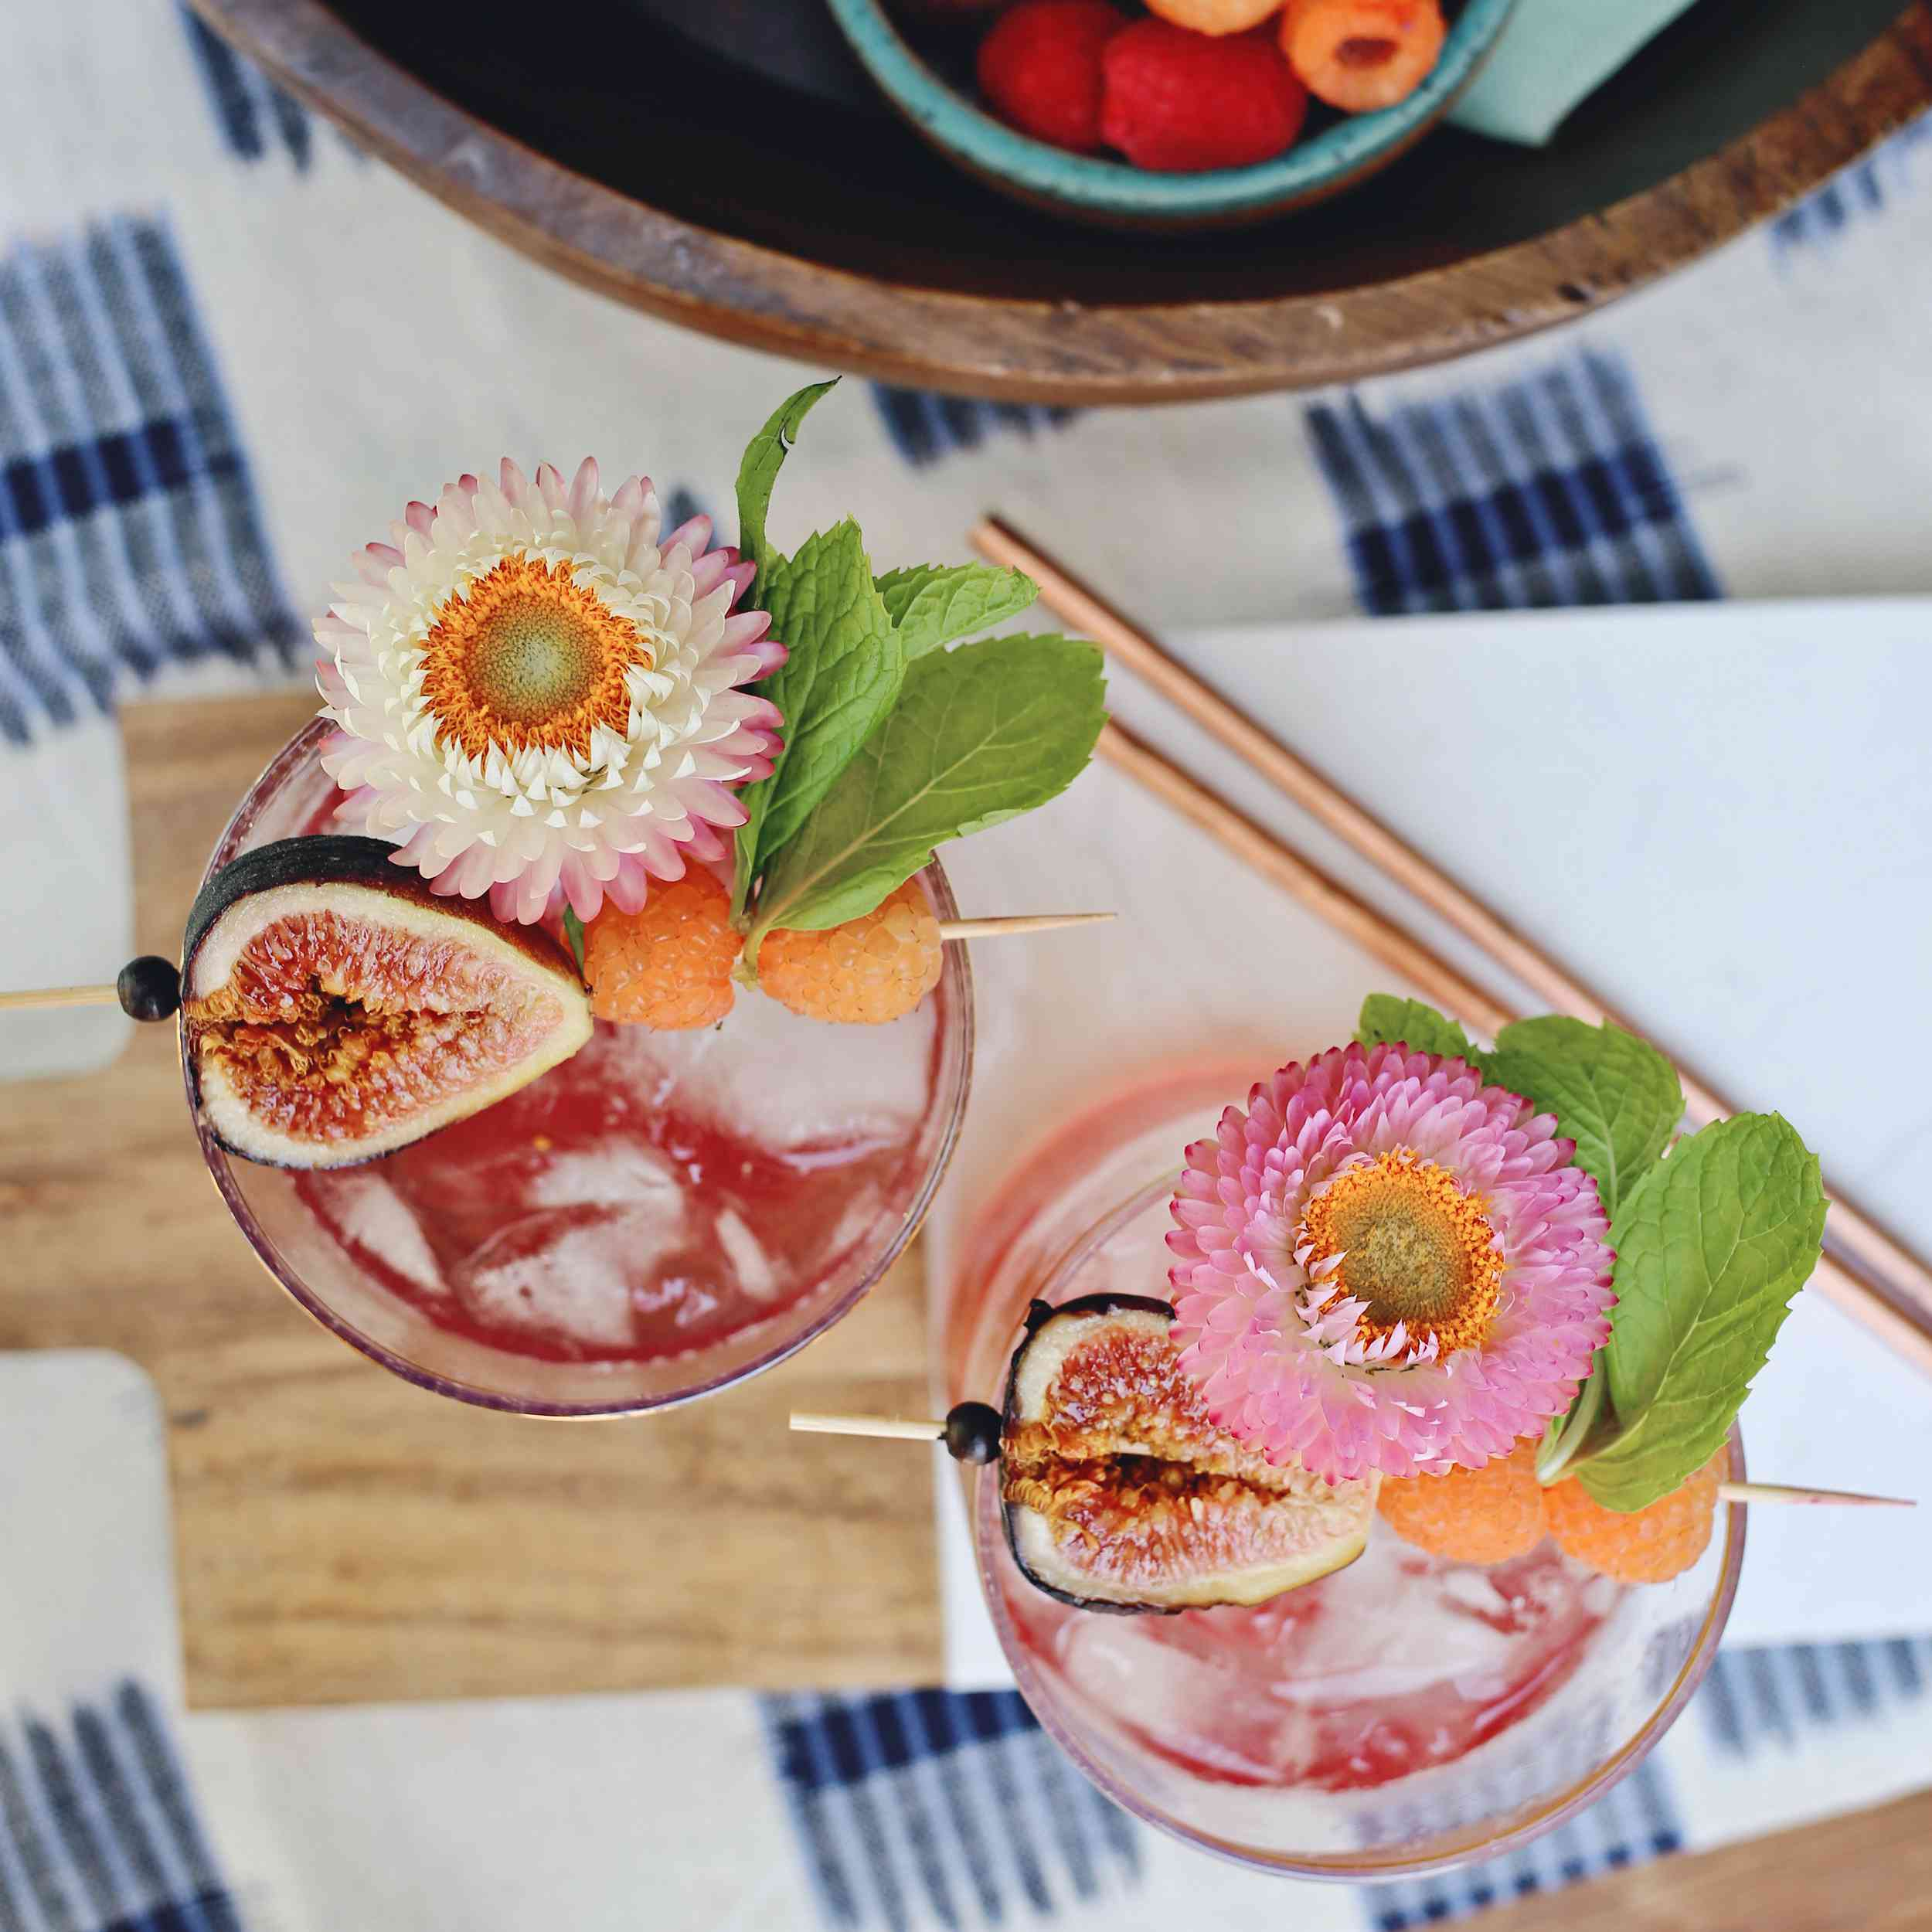 overhead view of pink cocktail with figs, raspberries and flowers on wood board and blue and white tablecloth